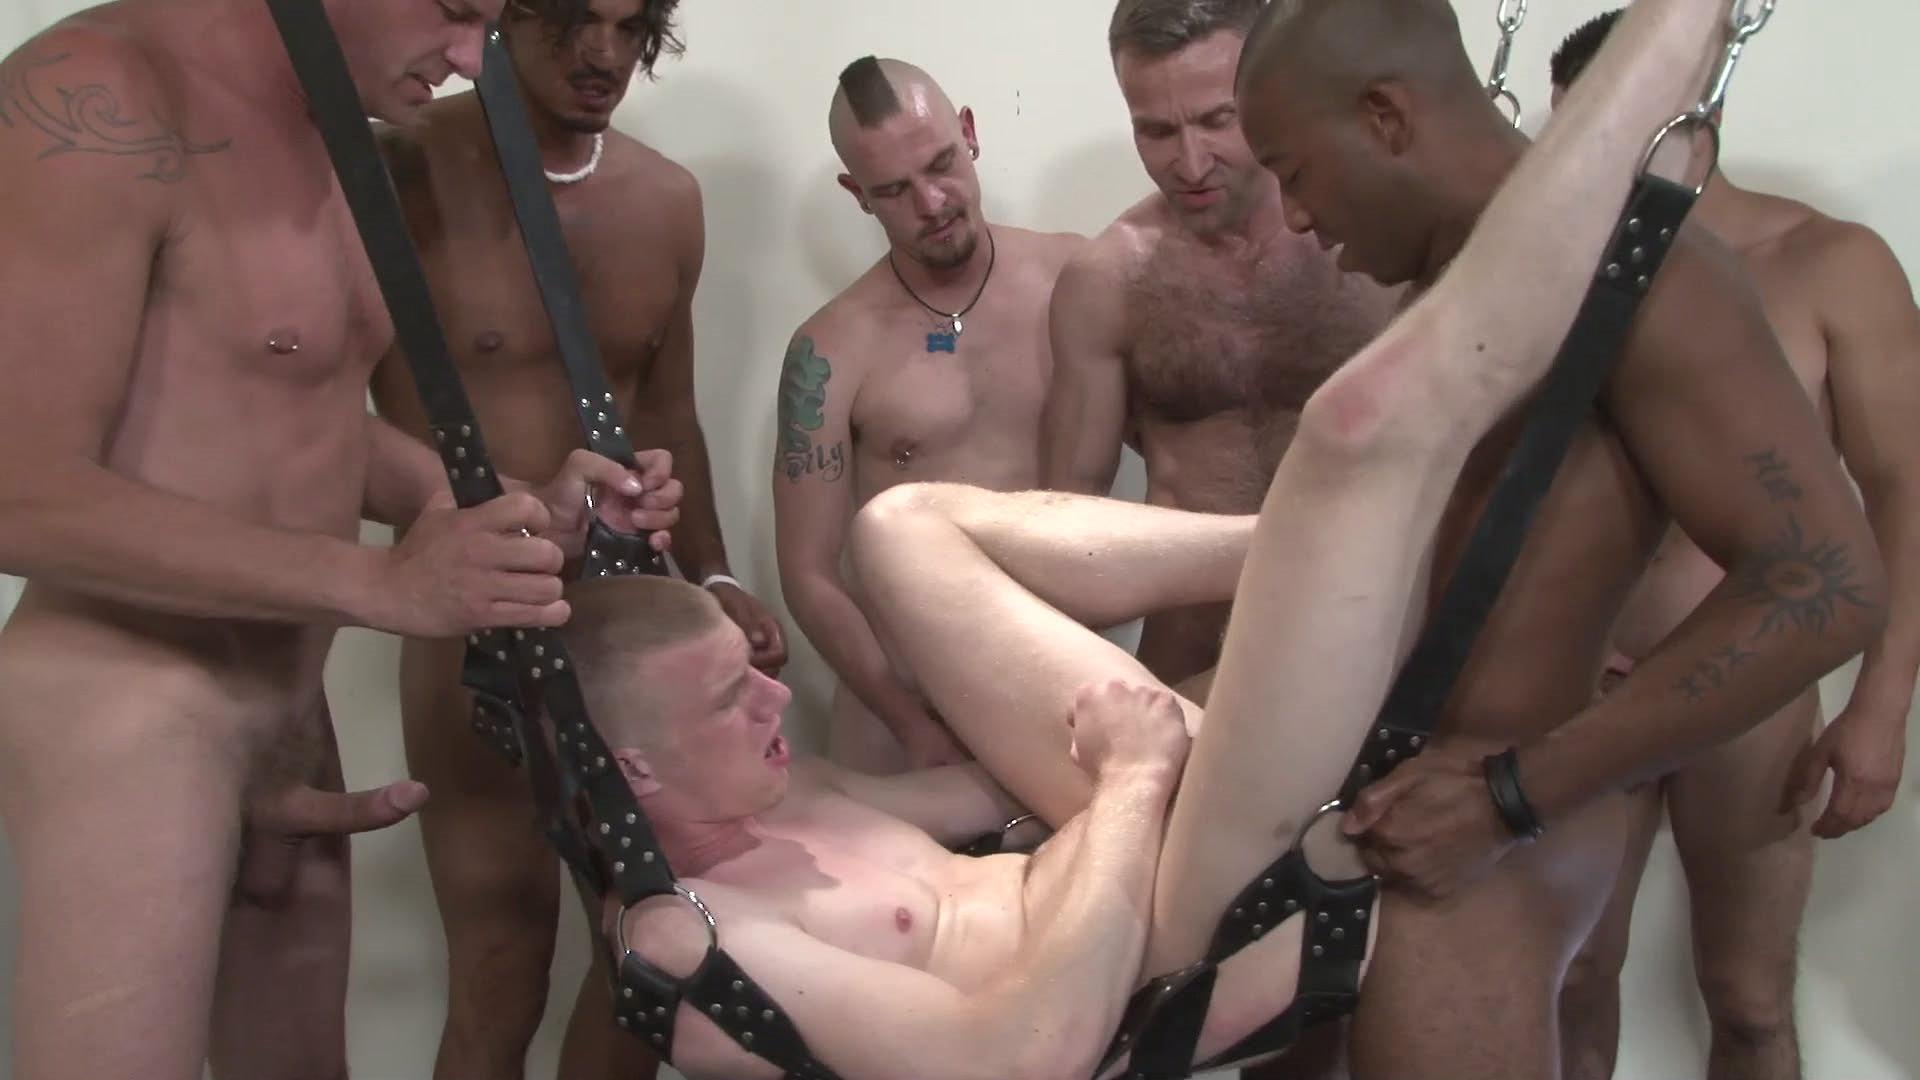 5 men for one slut